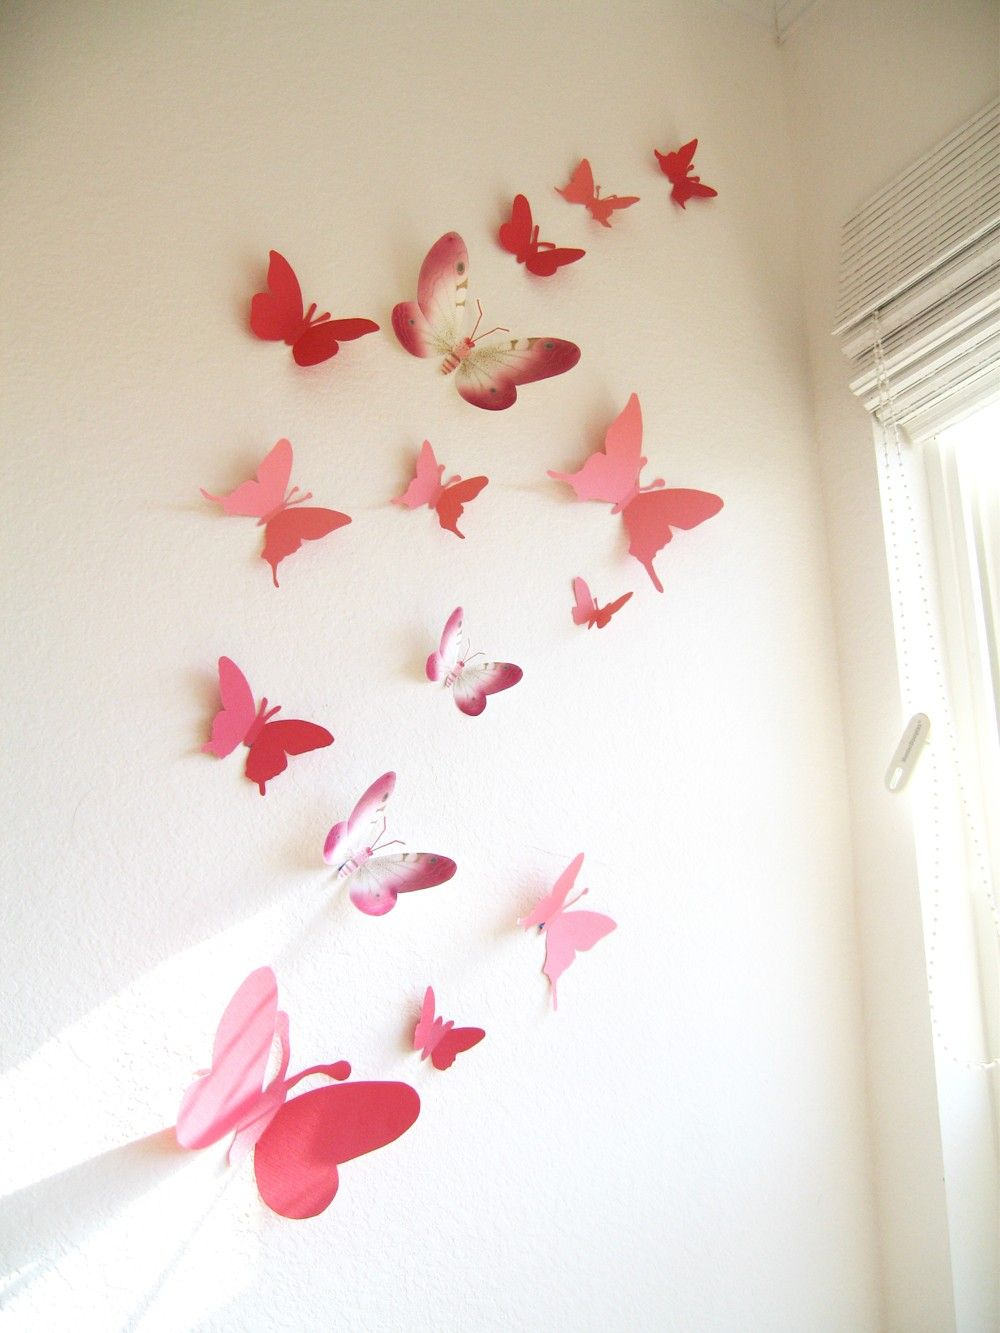 30 3d Wall Butterflies Paper Wall Decor 3d Pink Red Pattern Nursery Baby Wedding Decor Showe With Images 3d Butterfly Wall Art Paper Wall Decor Butterfly Wall Art